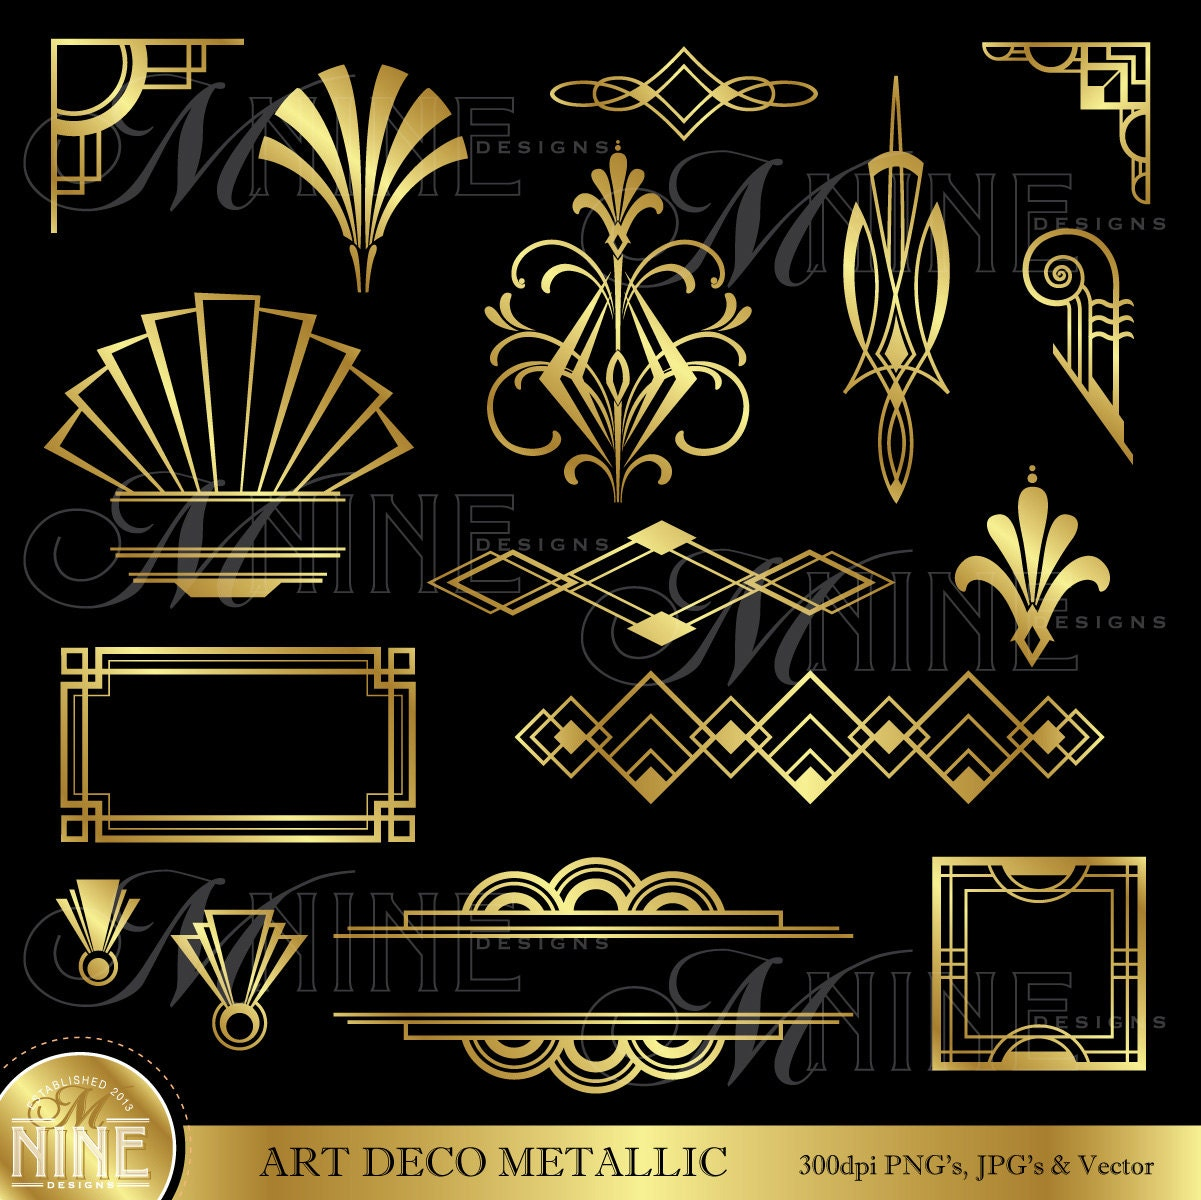 art deco clip art gold art deco accents design. Black Bedroom Furniture Sets. Home Design Ideas